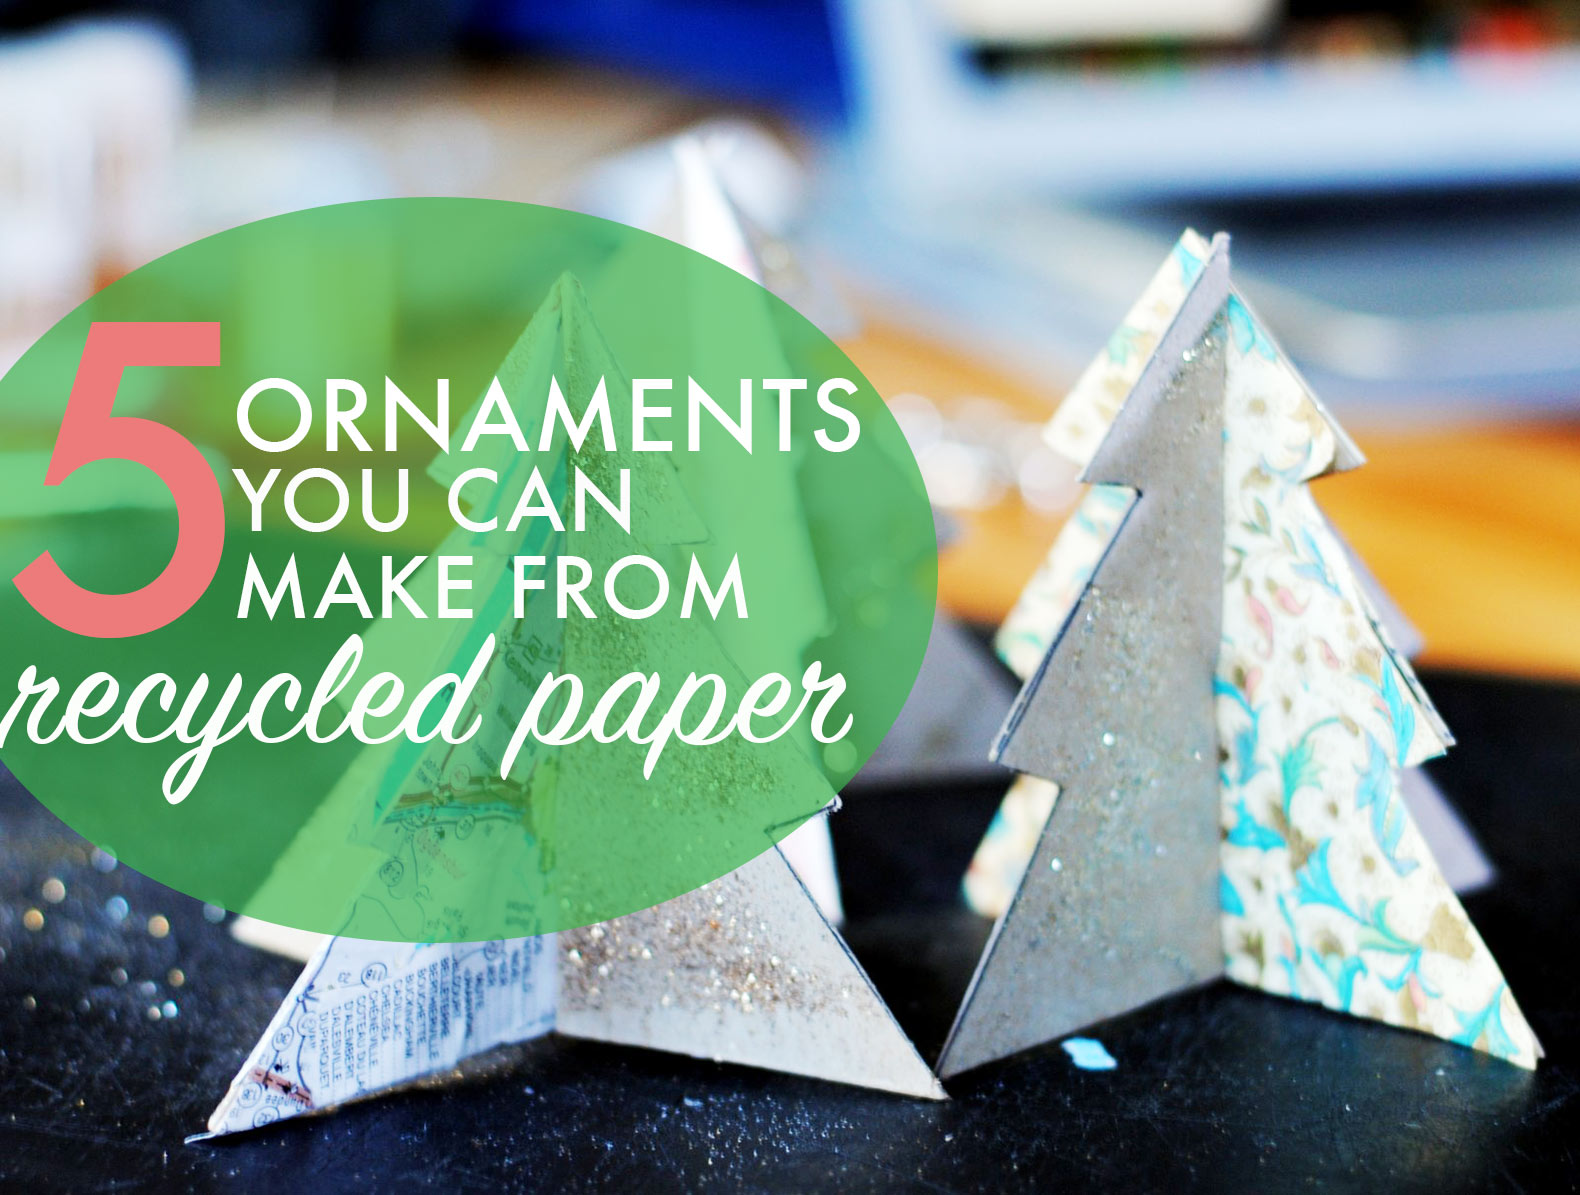 Homemade (recycled) Paper · How To Make Paper · Papercraft on Cut ... | 1195x1580